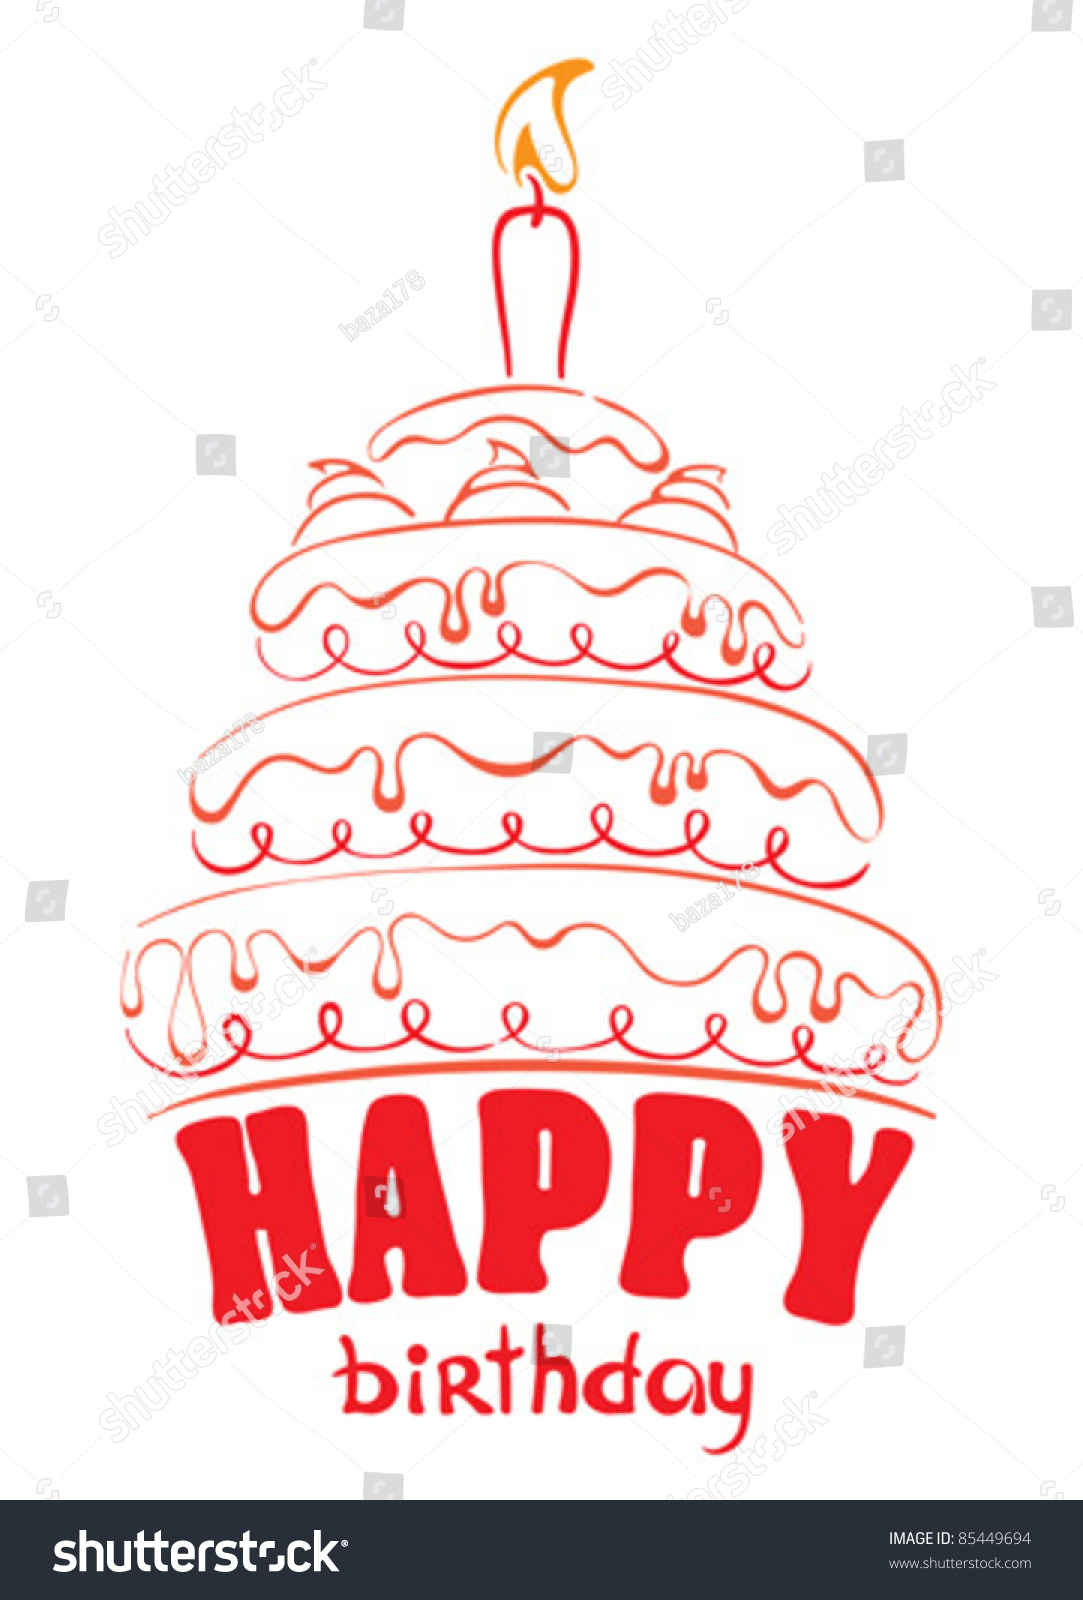 Cake - Happy Birthday Stock Vector Illustration 85449694 ...